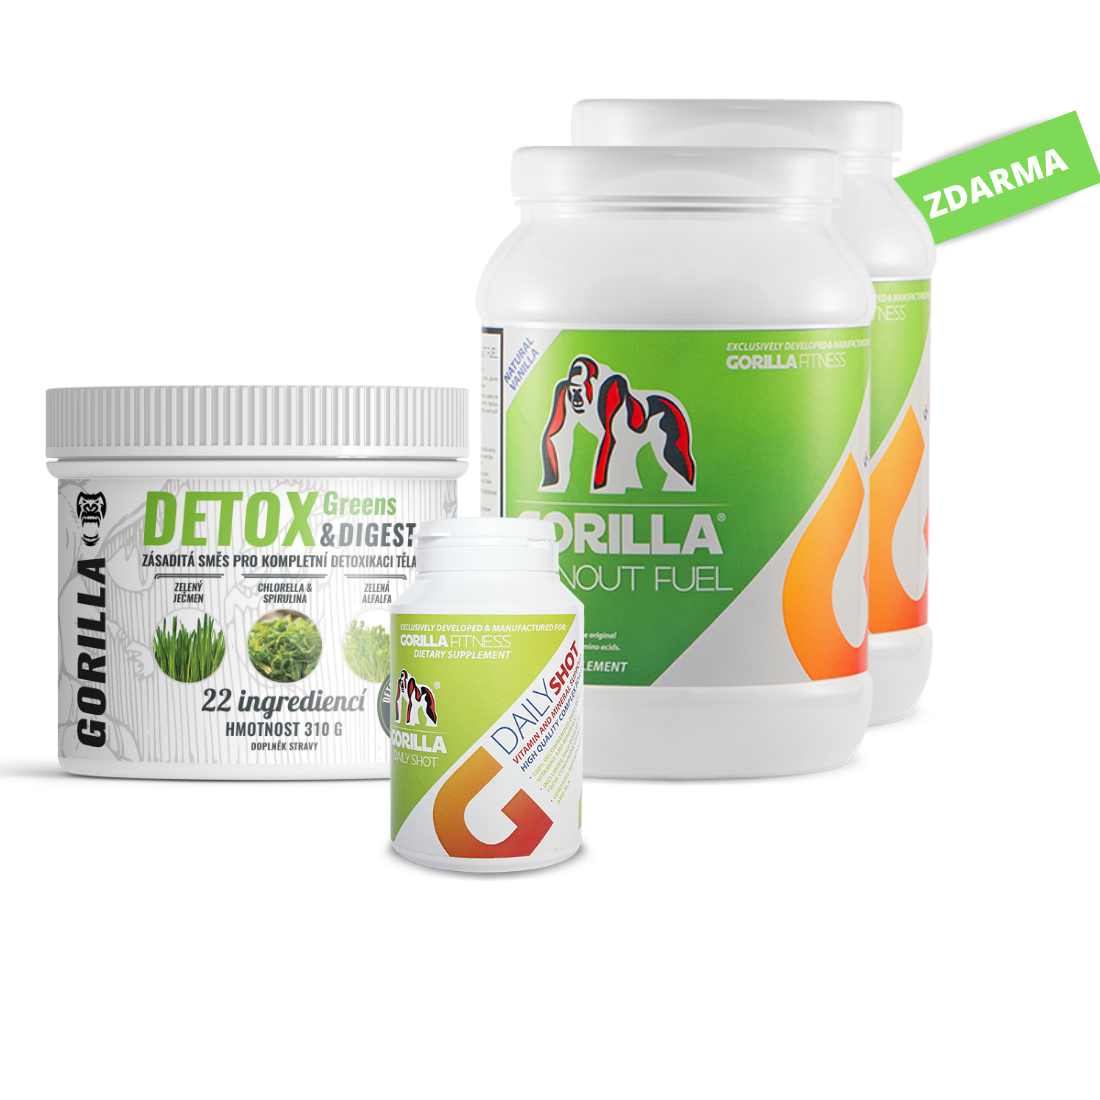 Detox balíček:  DETOX Greens & DIGEST 310 g, DailySHOT (60tb), Burnout Fuel 1+1